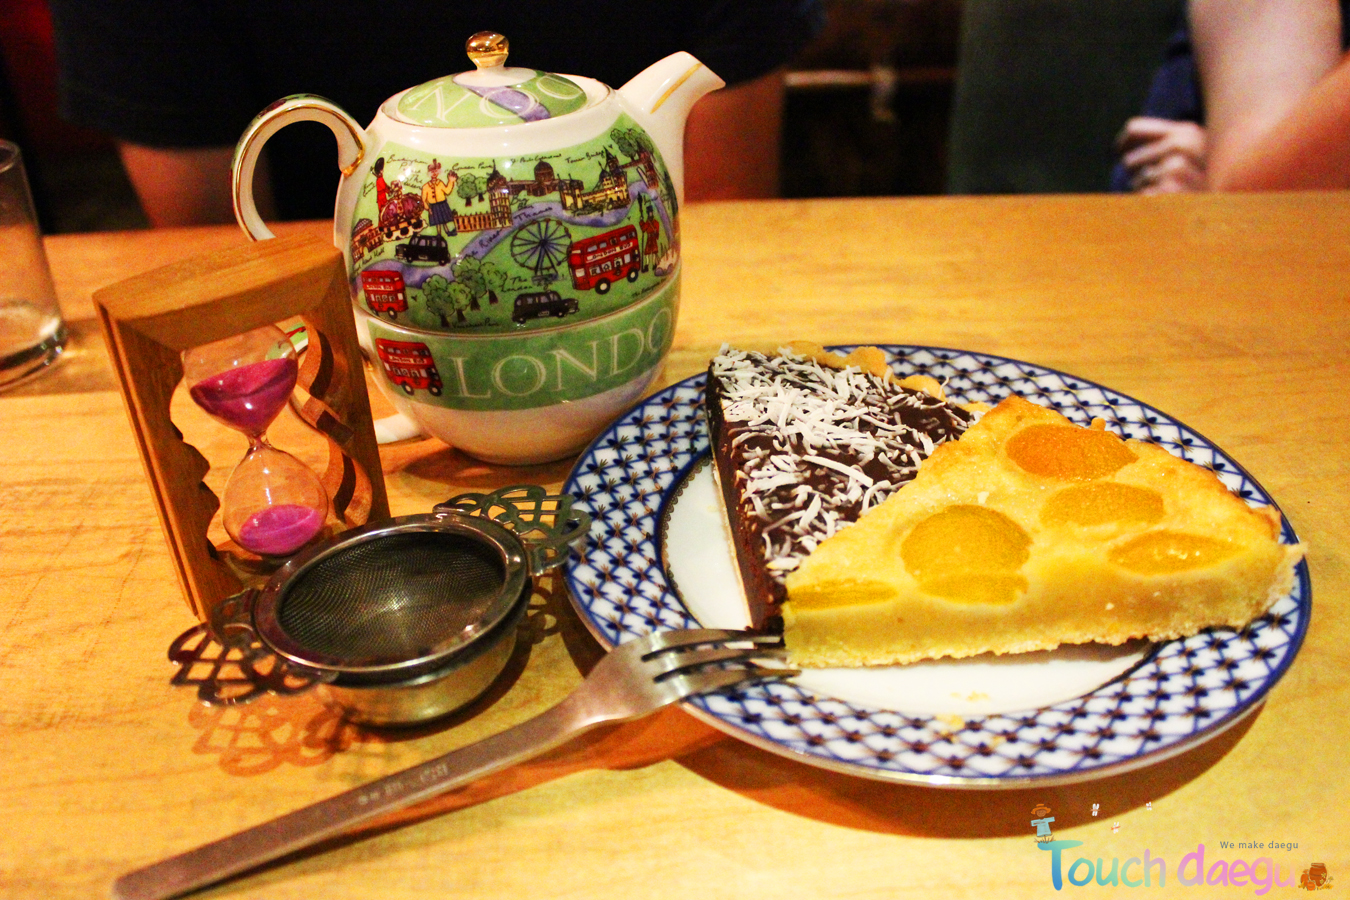 Ready to enjoy teatime with a pot of tea and sweet pies